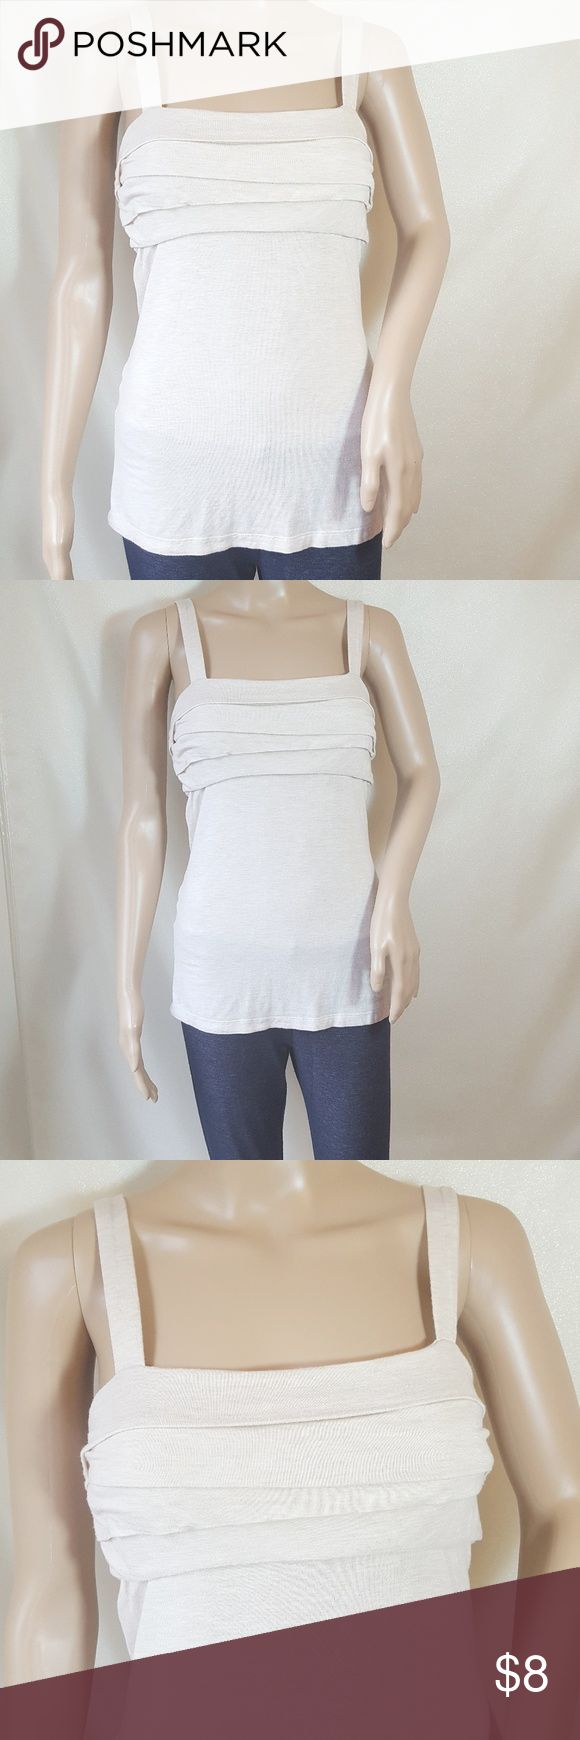 🆕️BCBG Khaki Cami🆕️ This is a BCBGeneration cami with adjustable straps. It has an uneven,  layered design on the bust and hits just below the waist. BCBGeneration Tops